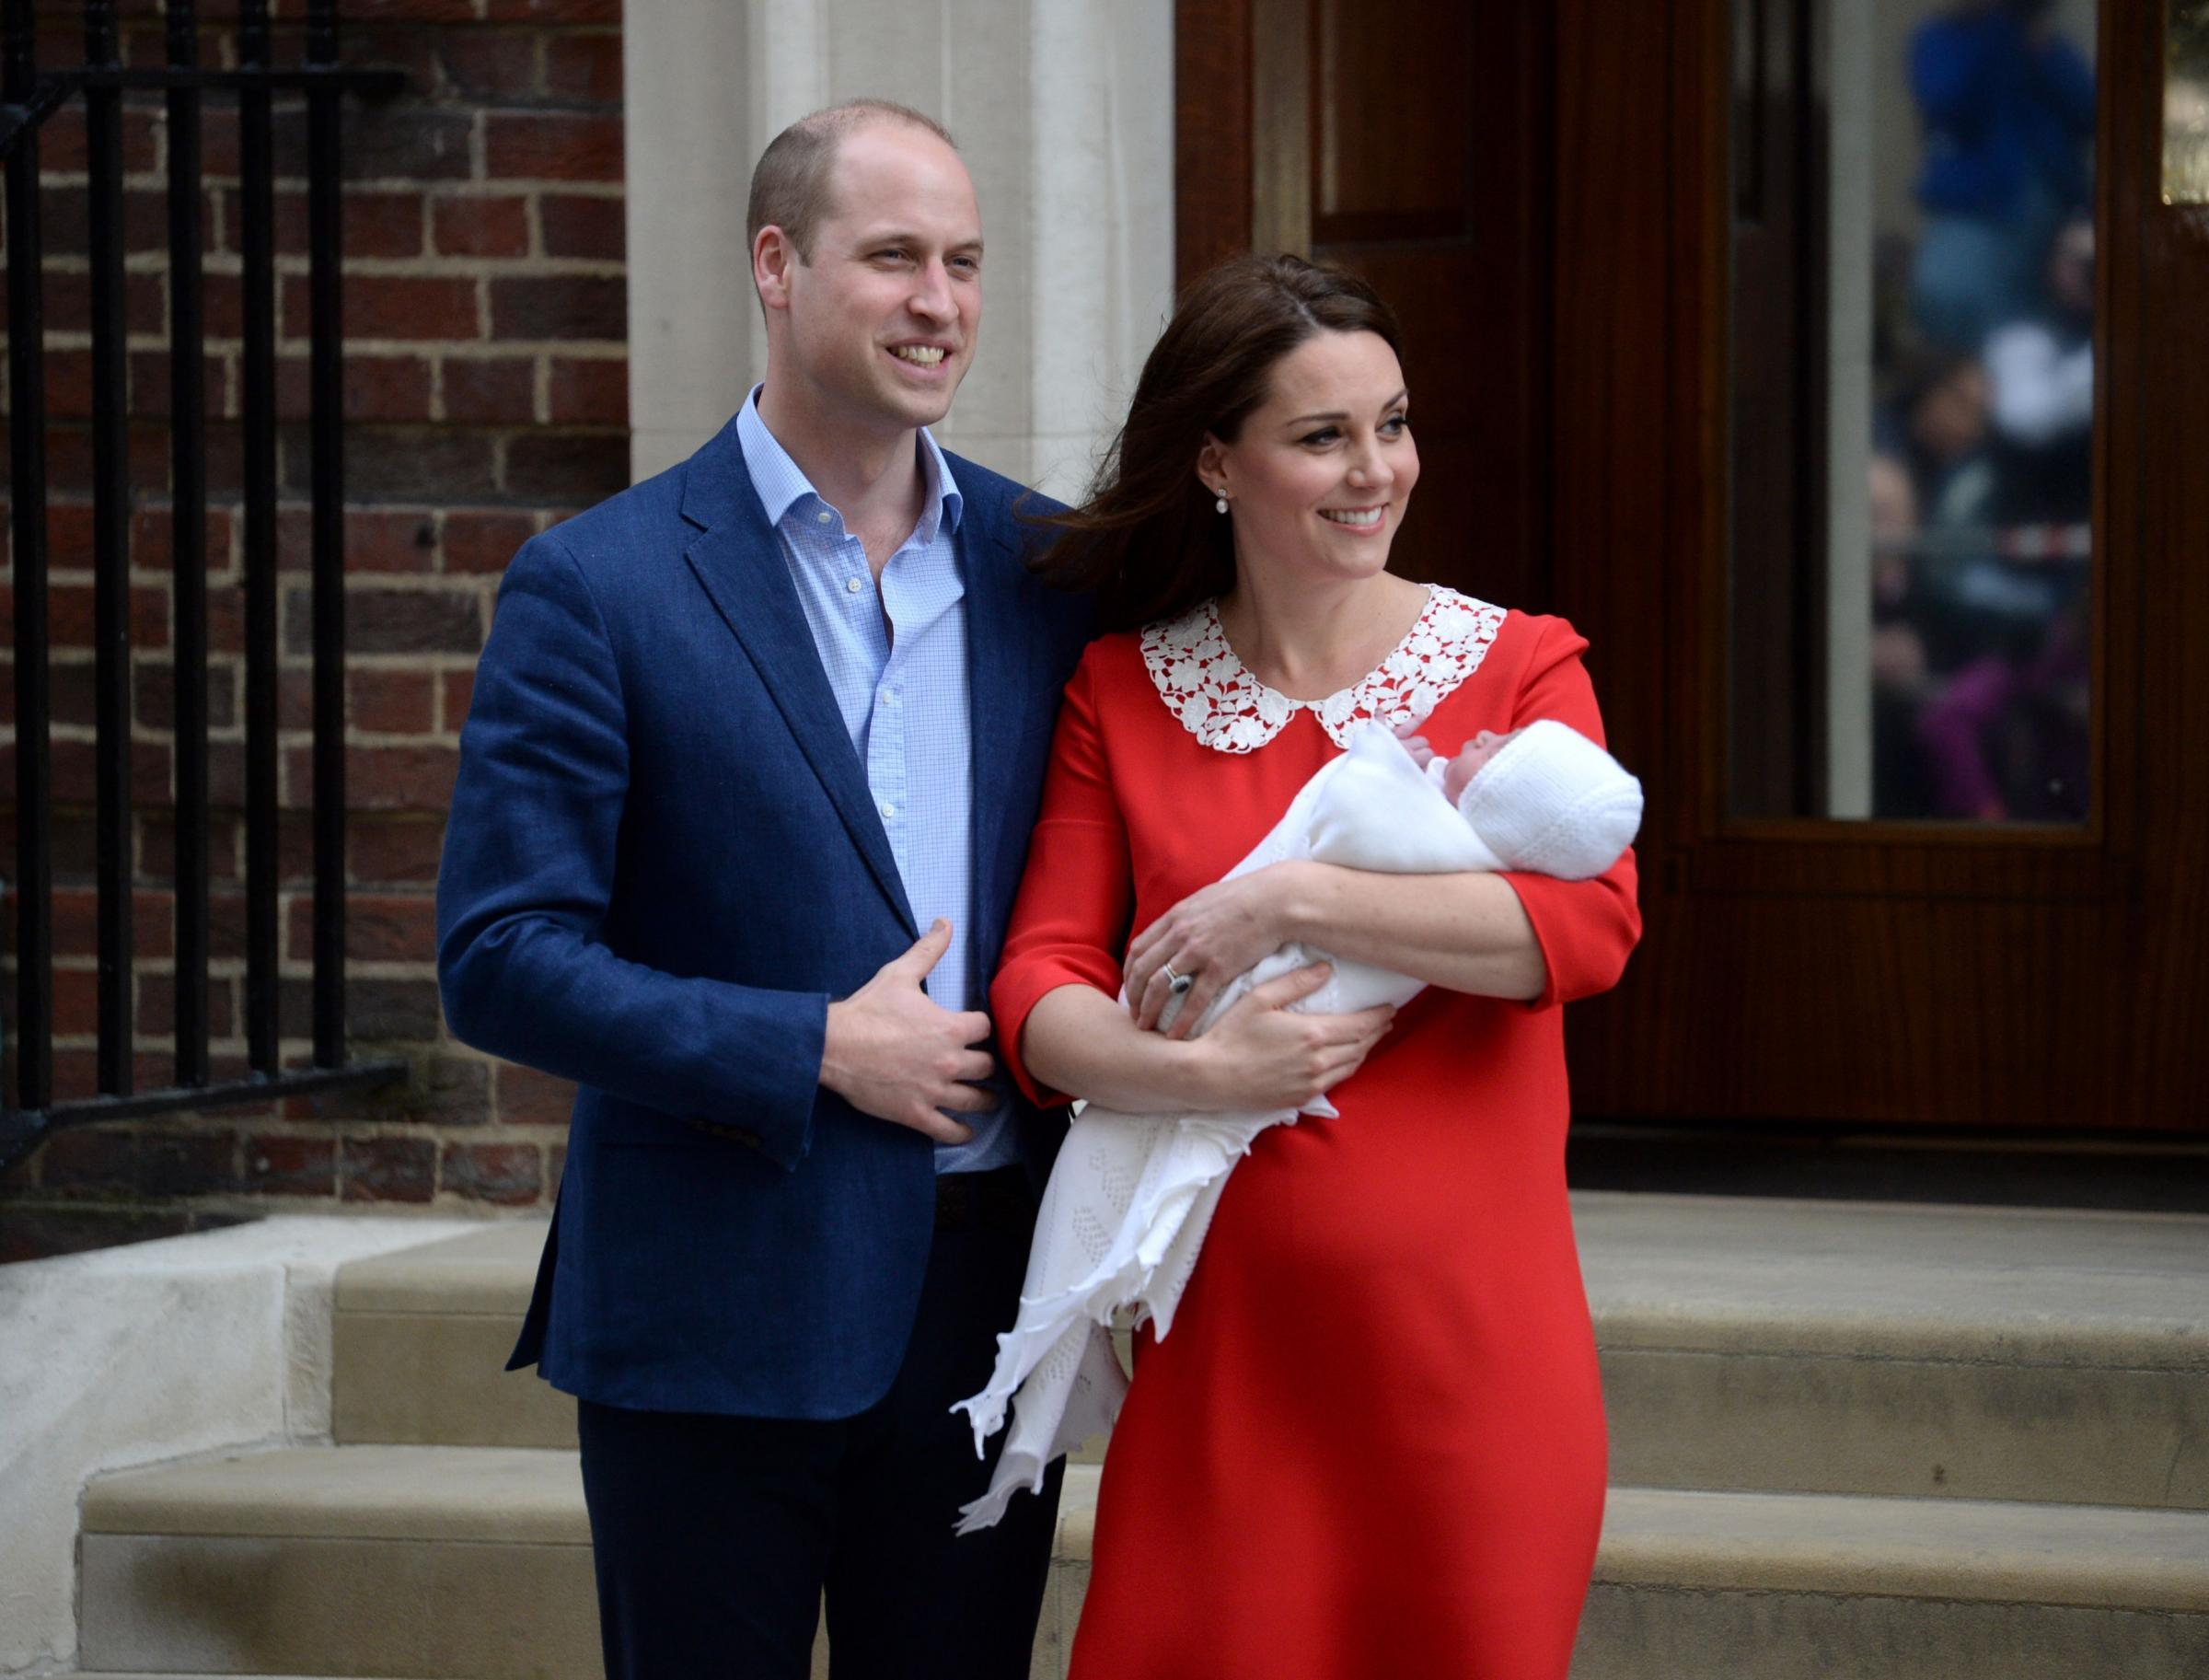 The Duke and Duchess of Cambridge and their newborn son outside the Lindo Wing at St Mary's Hospital in Paddington, London. PRESS ASSOCIATION Photo.